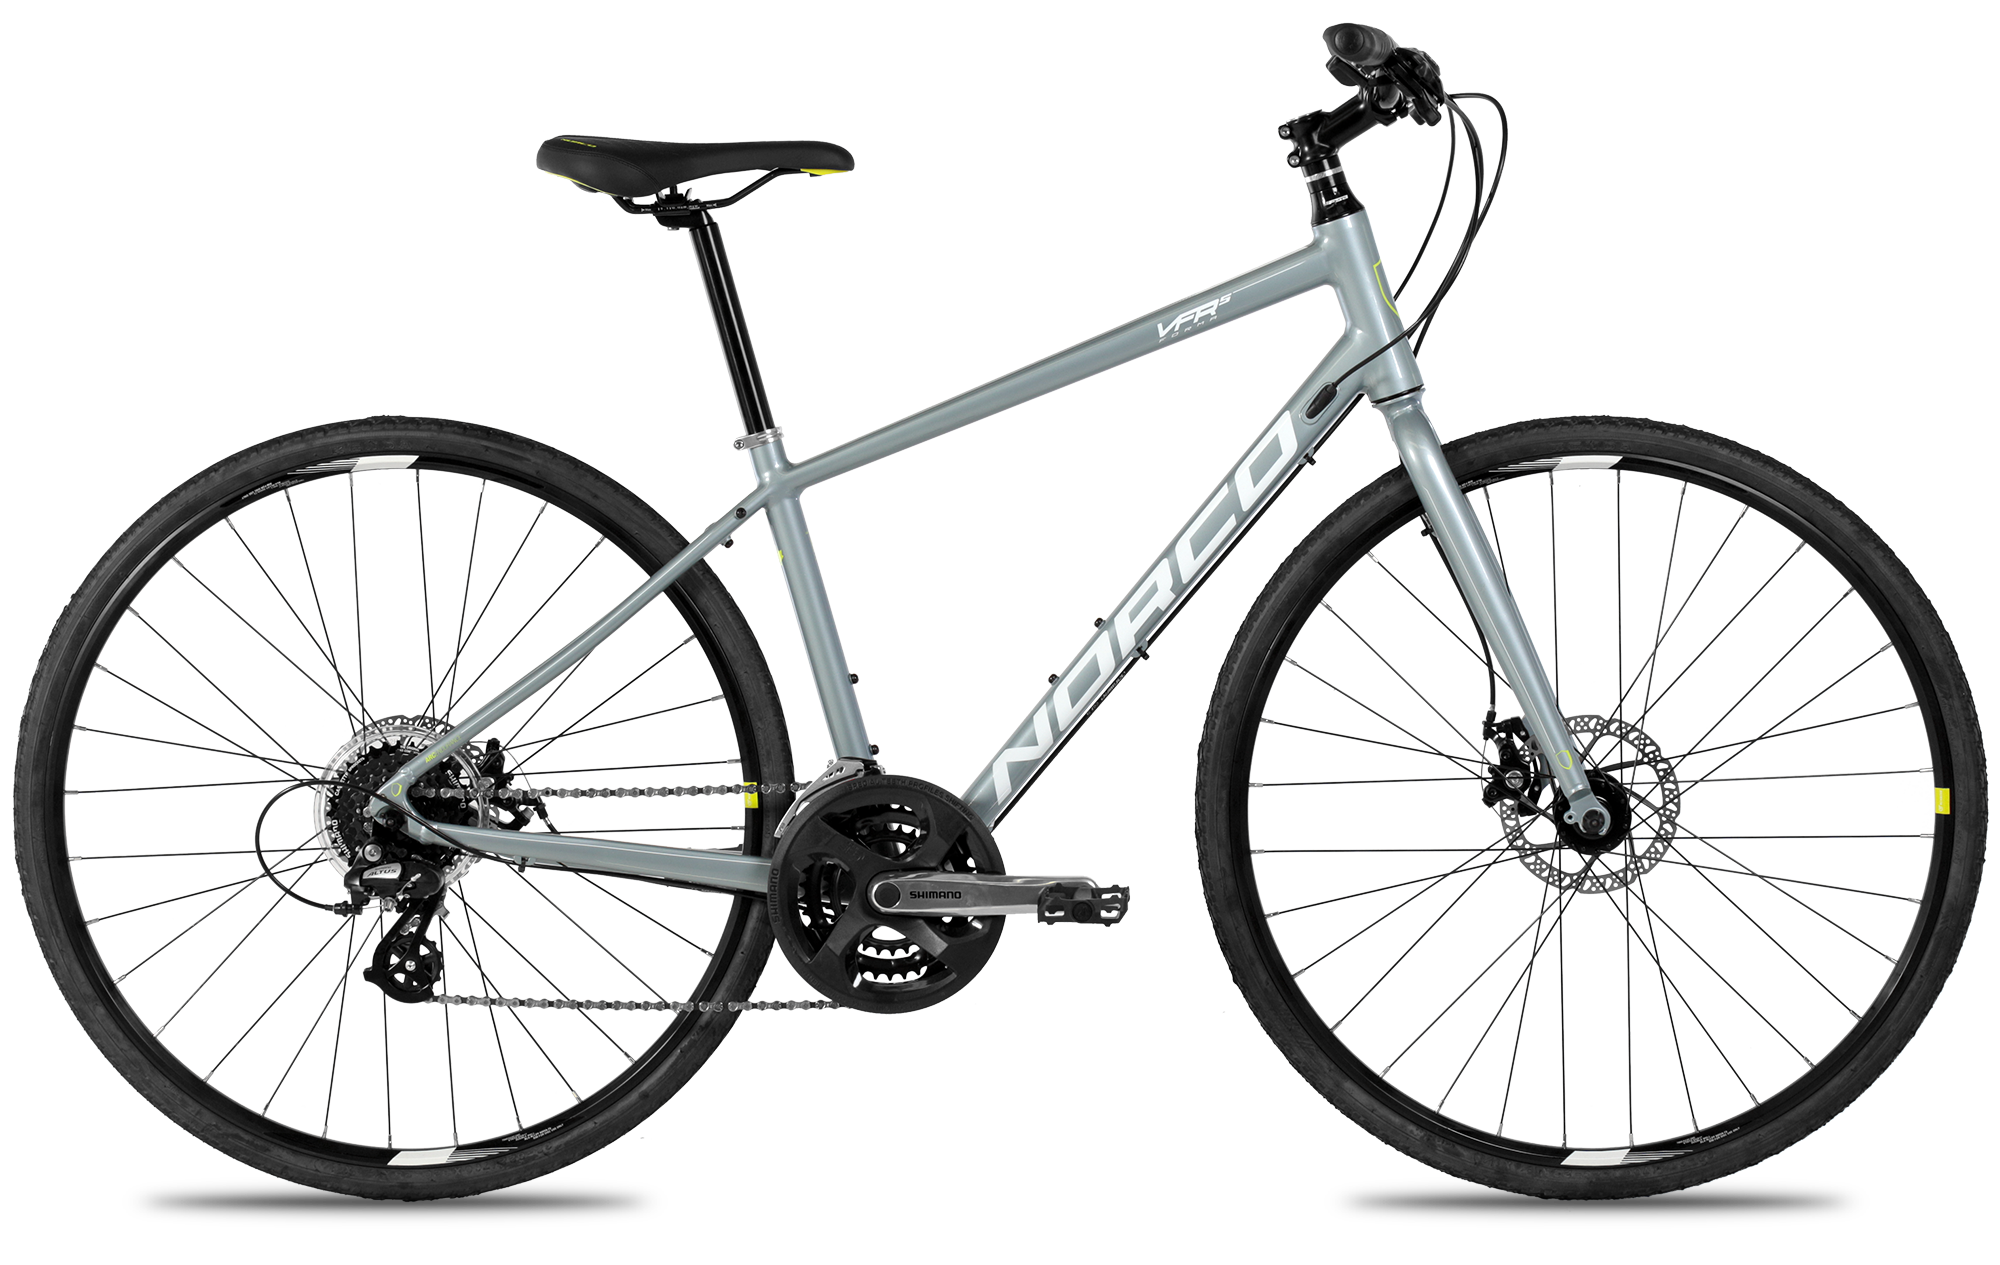 NORCO VFR 5